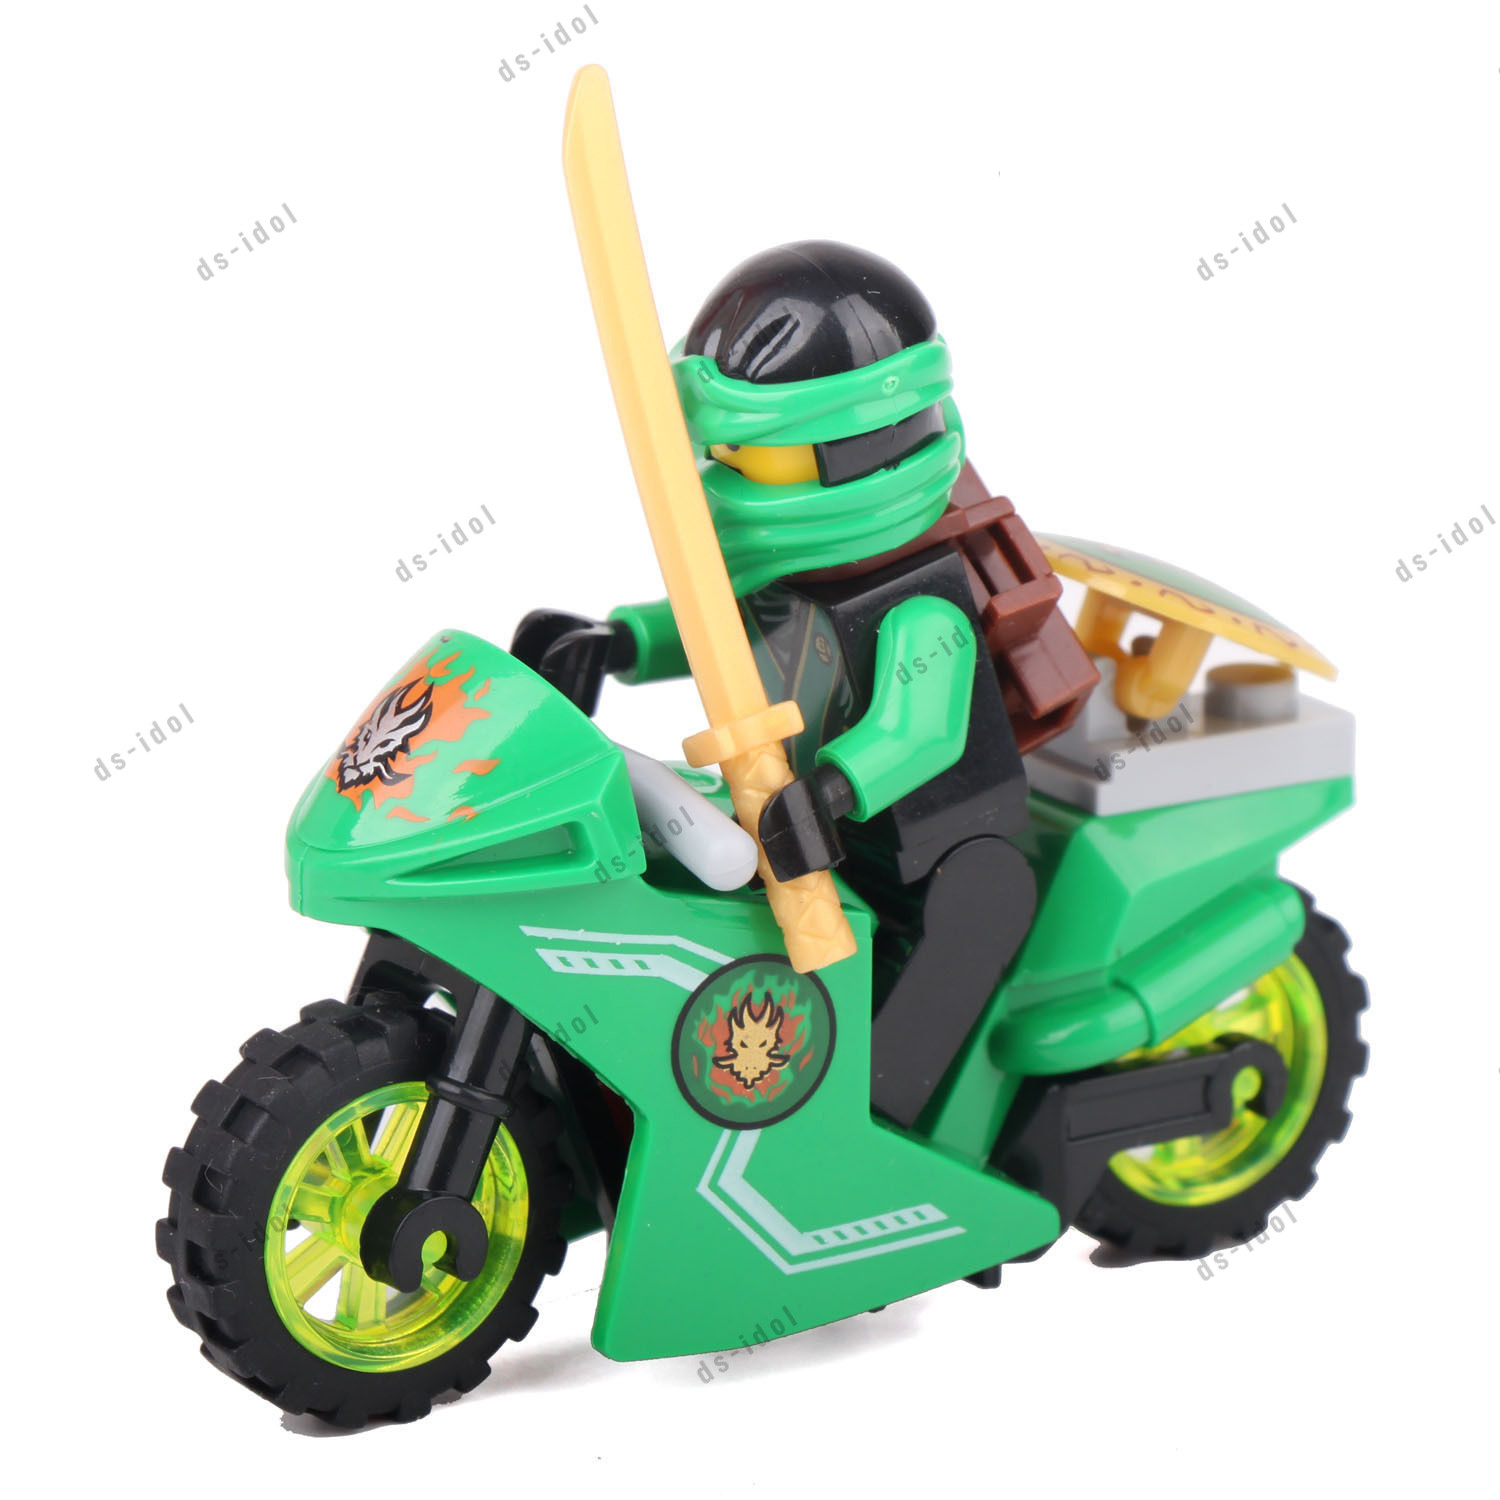 How To Build A Lego Motorcycle Ebay